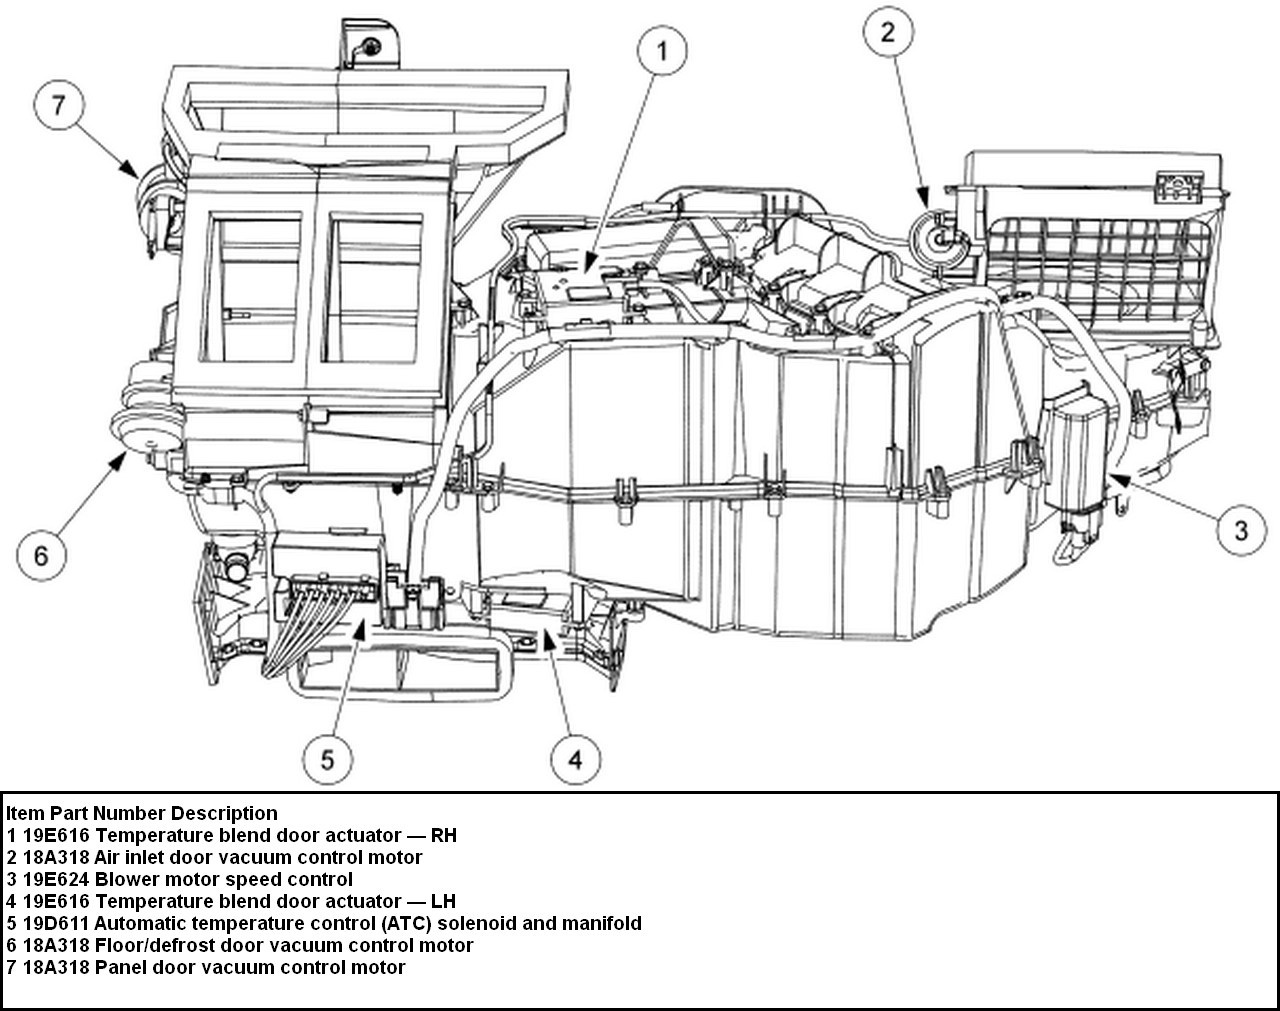 1999 ford expedition 5 4 engine diagram wiring library Ford Engine Parts Diagram 2004 ford expedition rear ac diagram wiring diagram for light switch u2022 rh lomond tw 2004